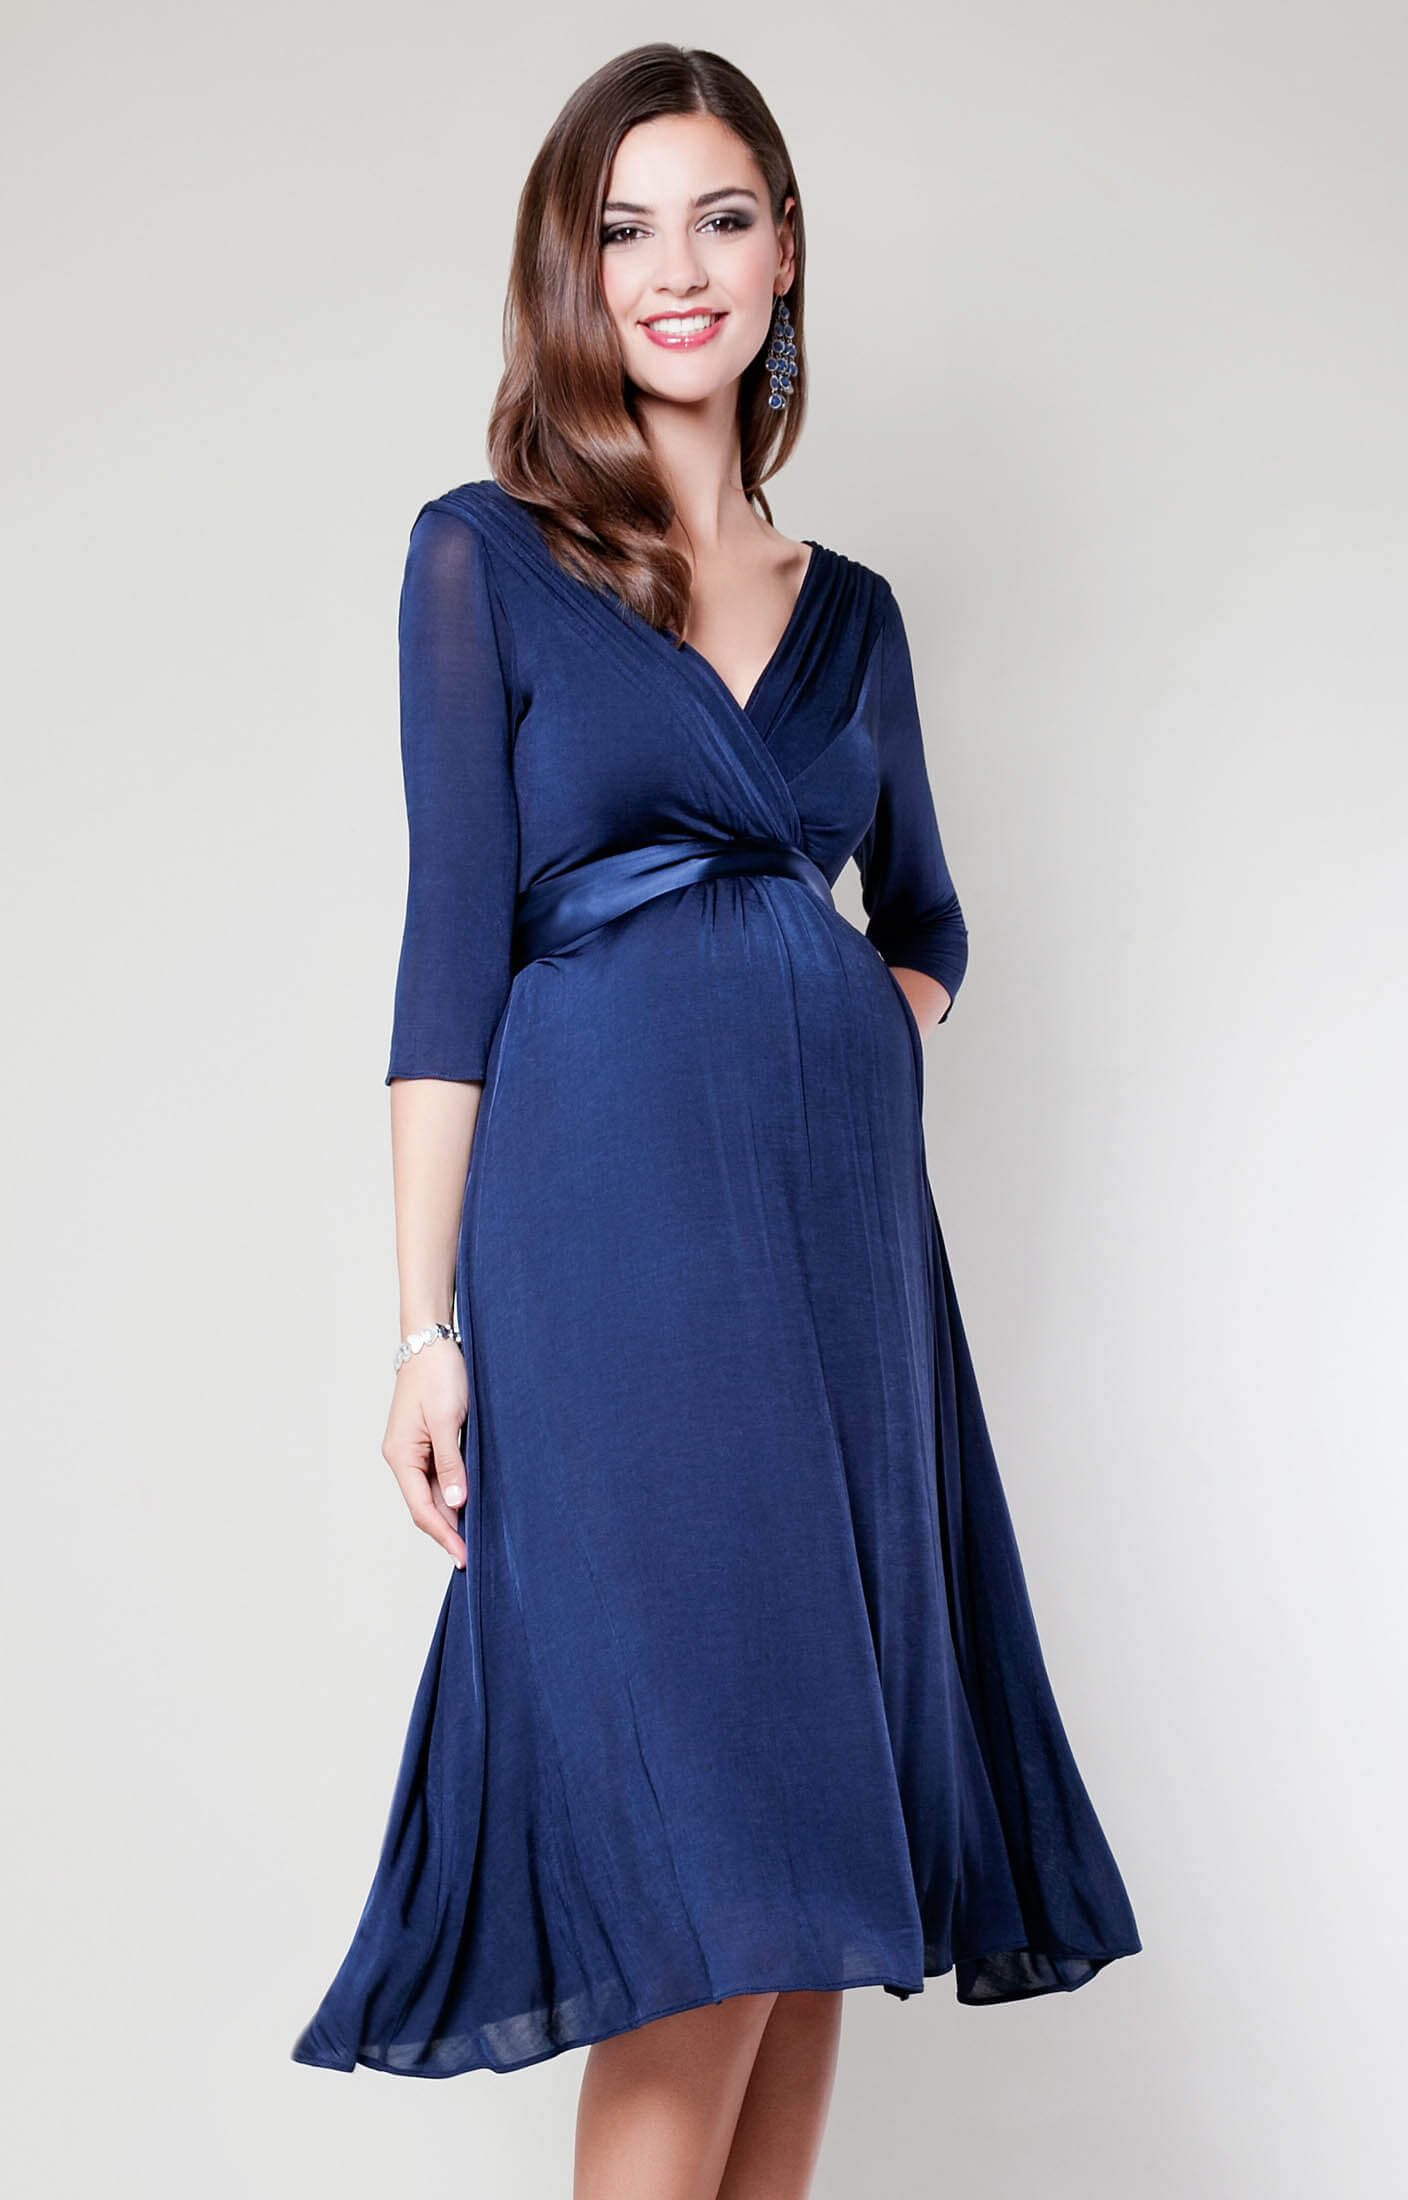 Maternity evening outfits uk long dresses online maternity evening outfits uk 43 ombrellifo Choice Image